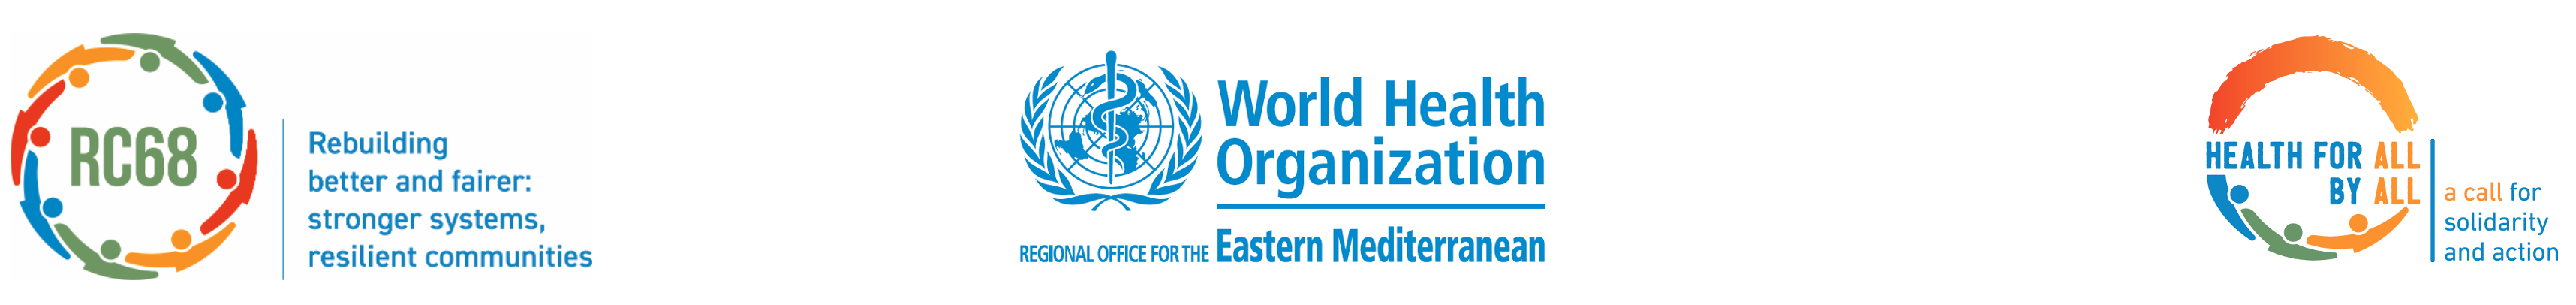 Sixty Eight-th session of the Regional Committee for the Eastern Mediterranean